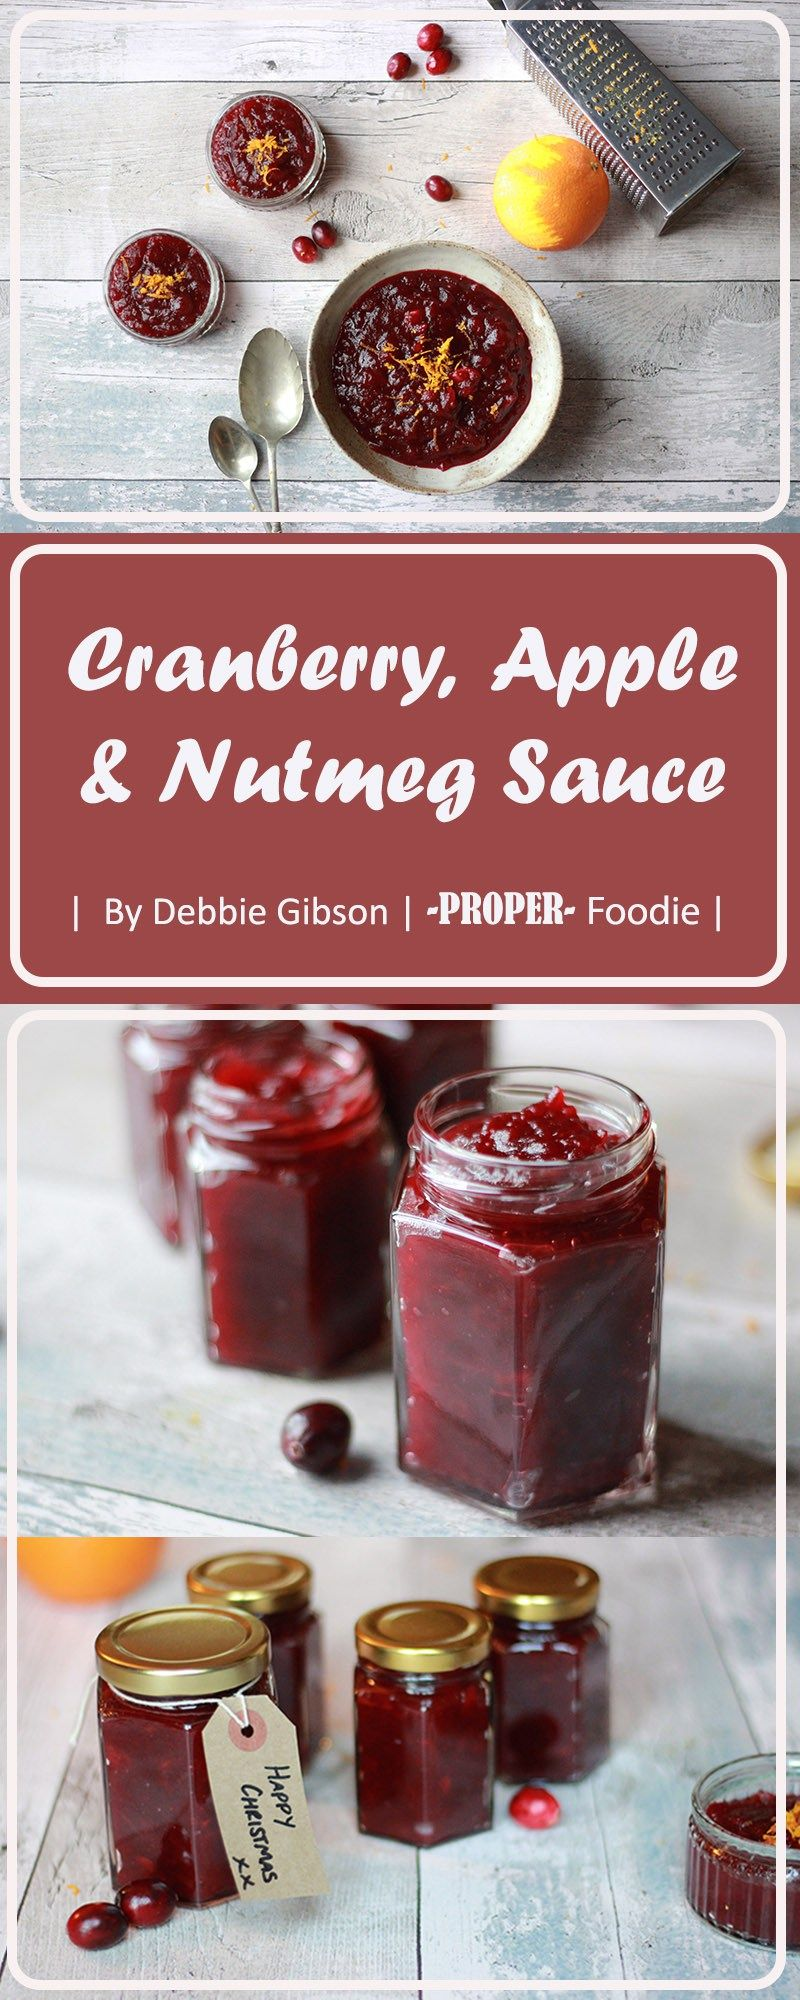 Cranberry Apple And Nutmeg Sauce Recipe Blue Ribbon Favorite Dishes Recipes Christmas Cranberry Sauce